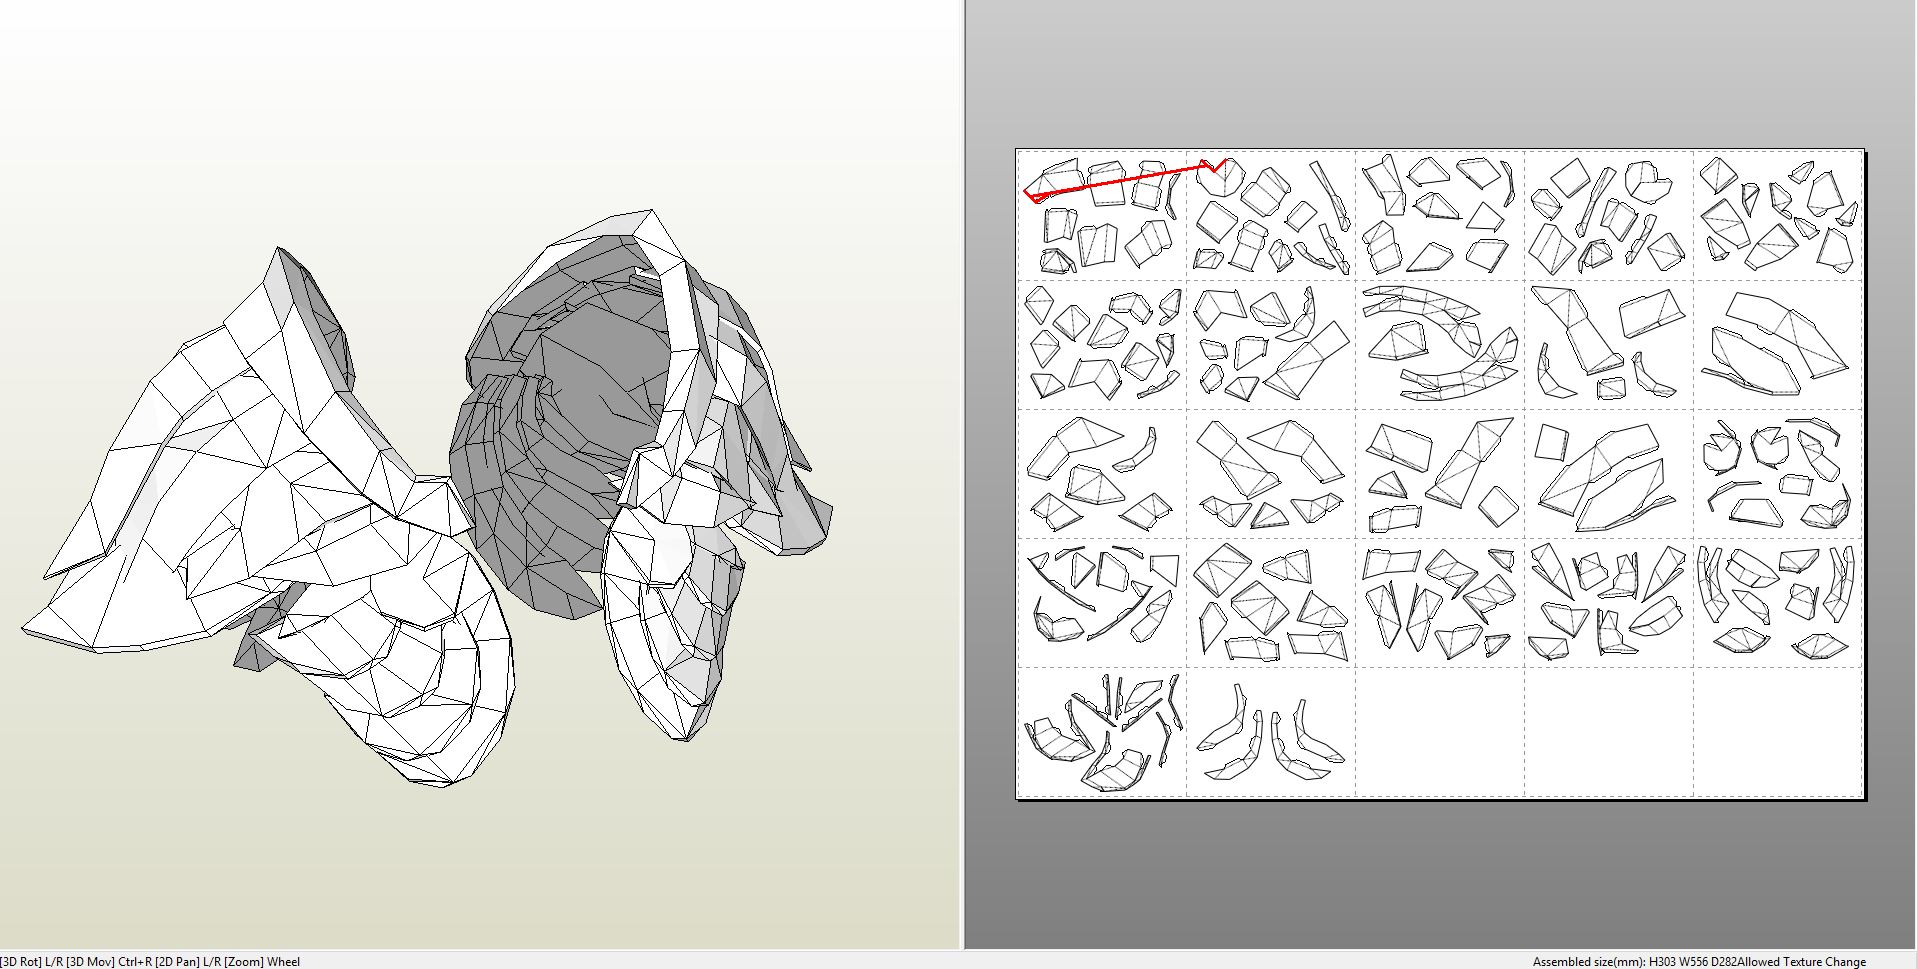 Papercraft pdo file template for skyrim male heavy elven armor elvenheavymalehelm elvenmaleheavyshoulder elvenmaleheavytorso elvenheavymalebiceps elvenheavymalegauntlet elvenmaleheavywaist elvenmaleheavytigh pronofoot35fo Image collections